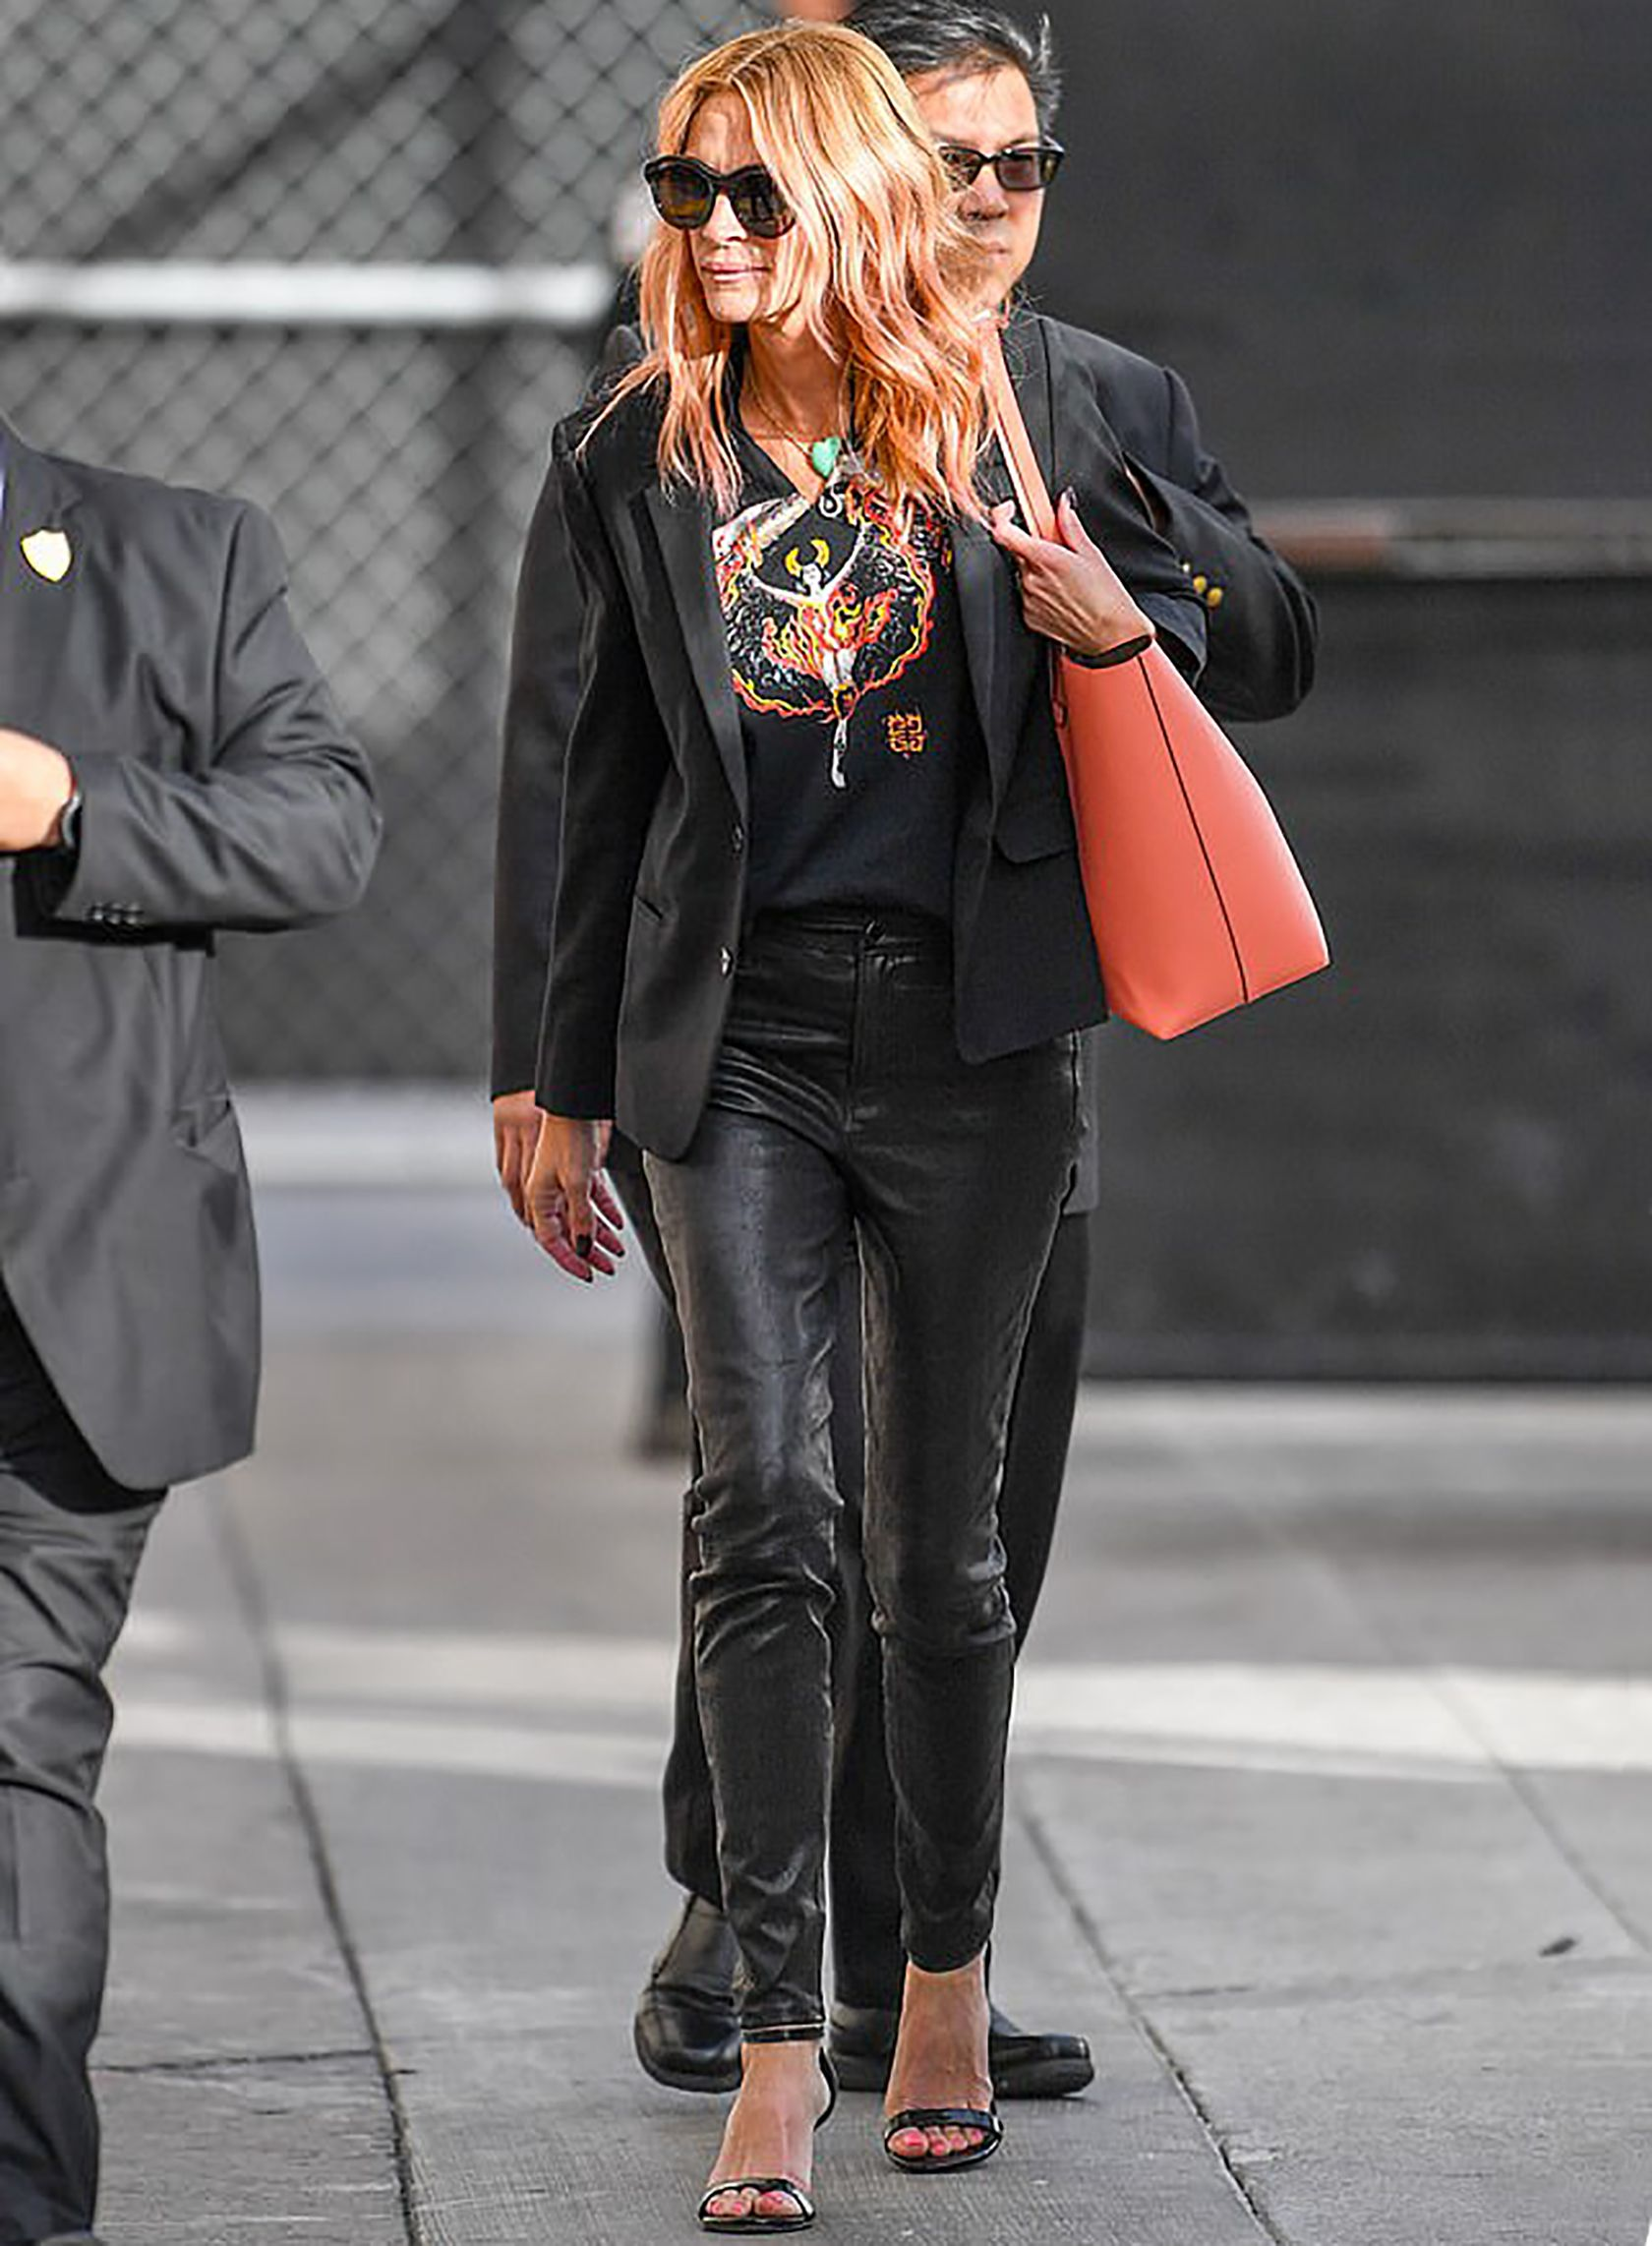 73e599469a8a Sydne Style shows how to dress like julia roberts in black leather pants  and blazer with graphic tee  juliaroberts  leather